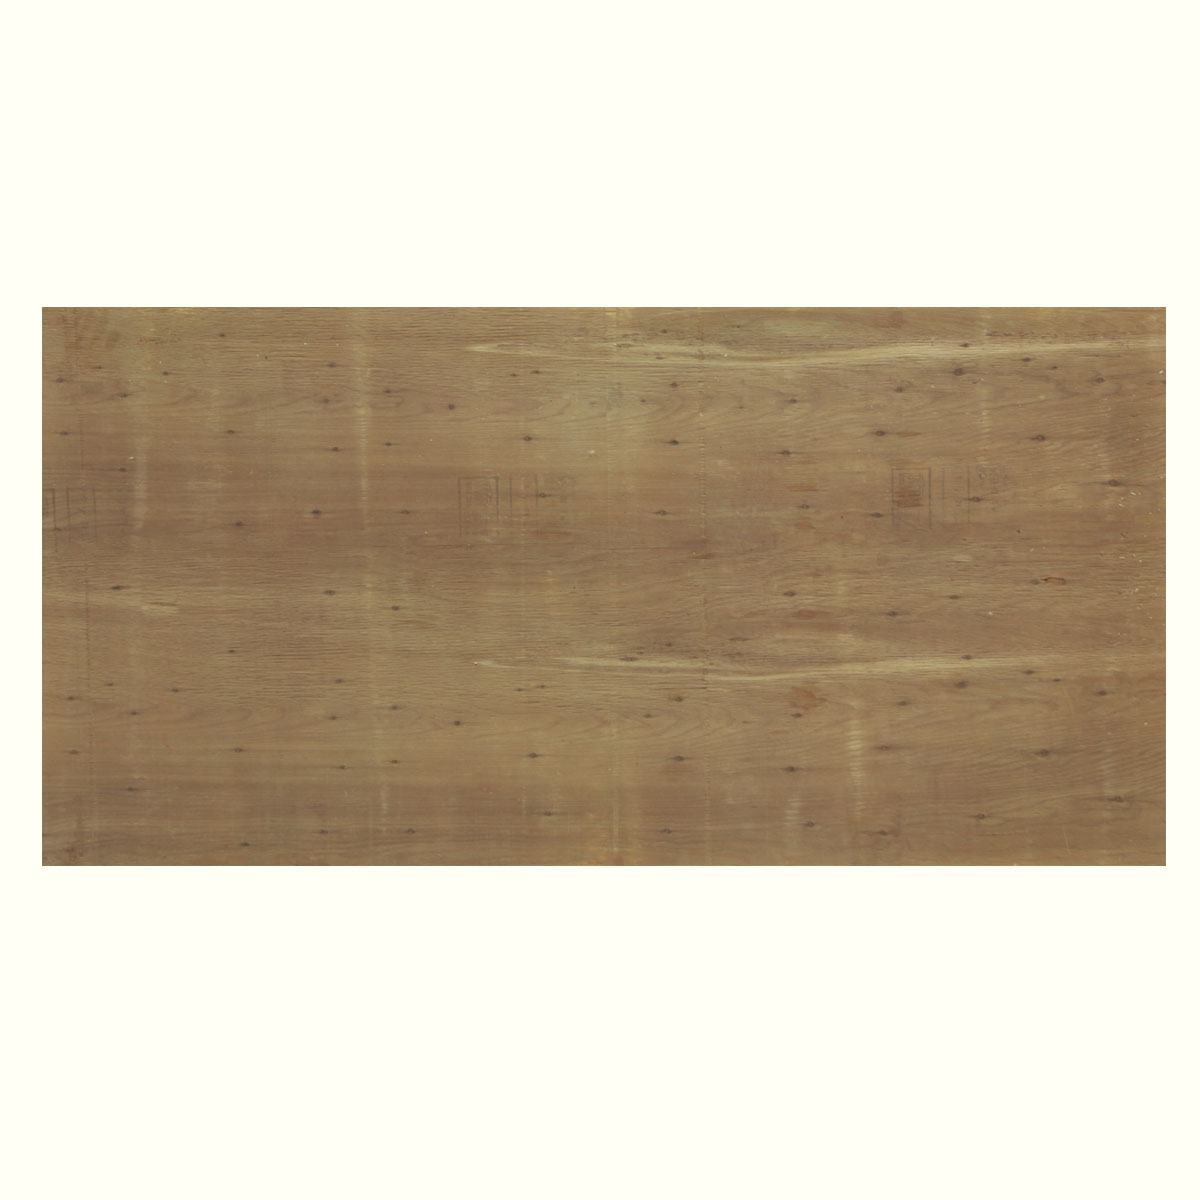 CCA Treated Plywood - 4 x 8 - 15.5 mm - 5/8-in